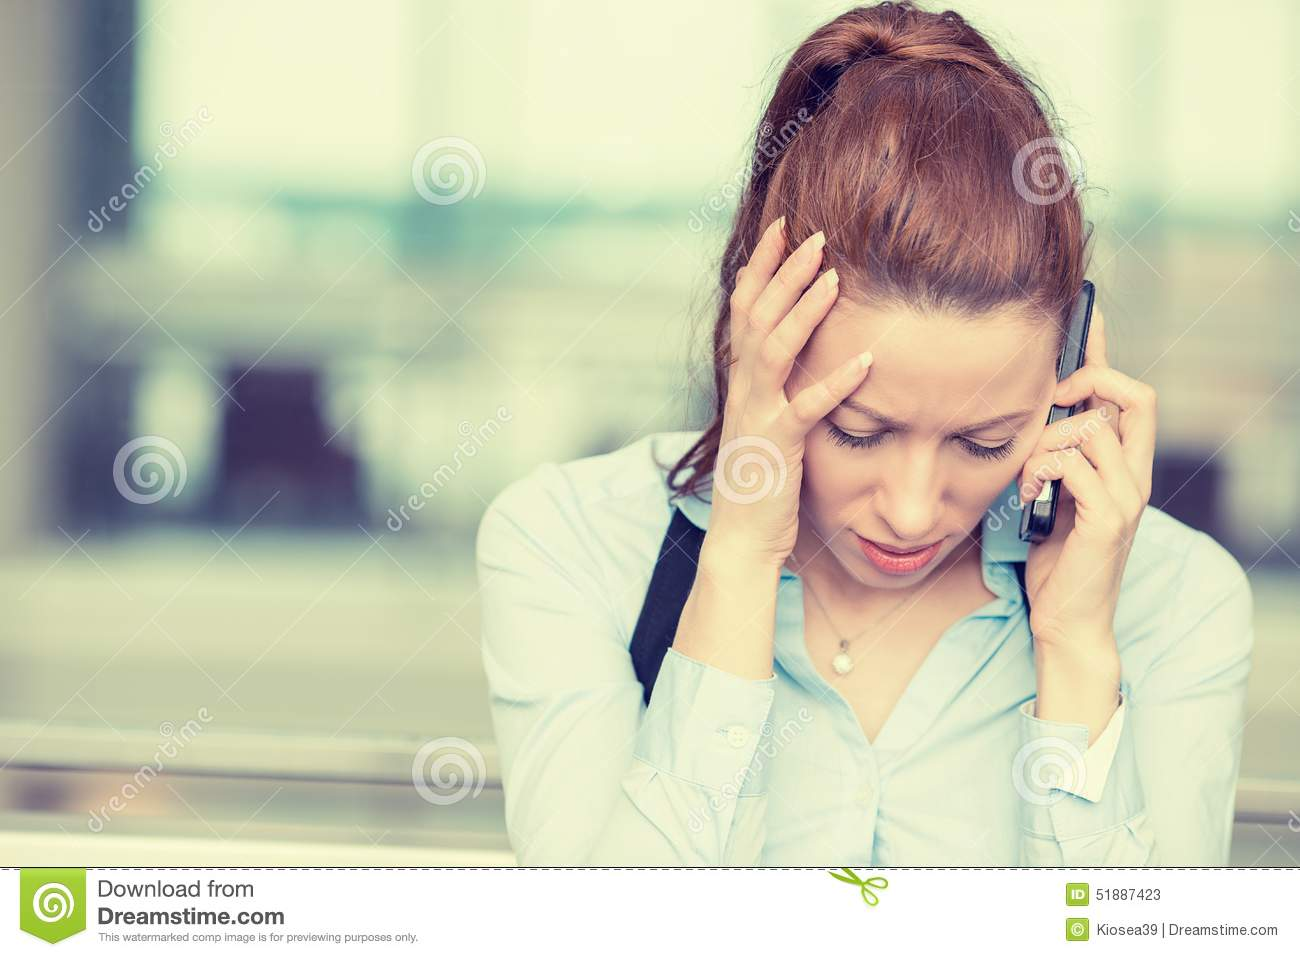 Sad woman talking on mobile phone looking down